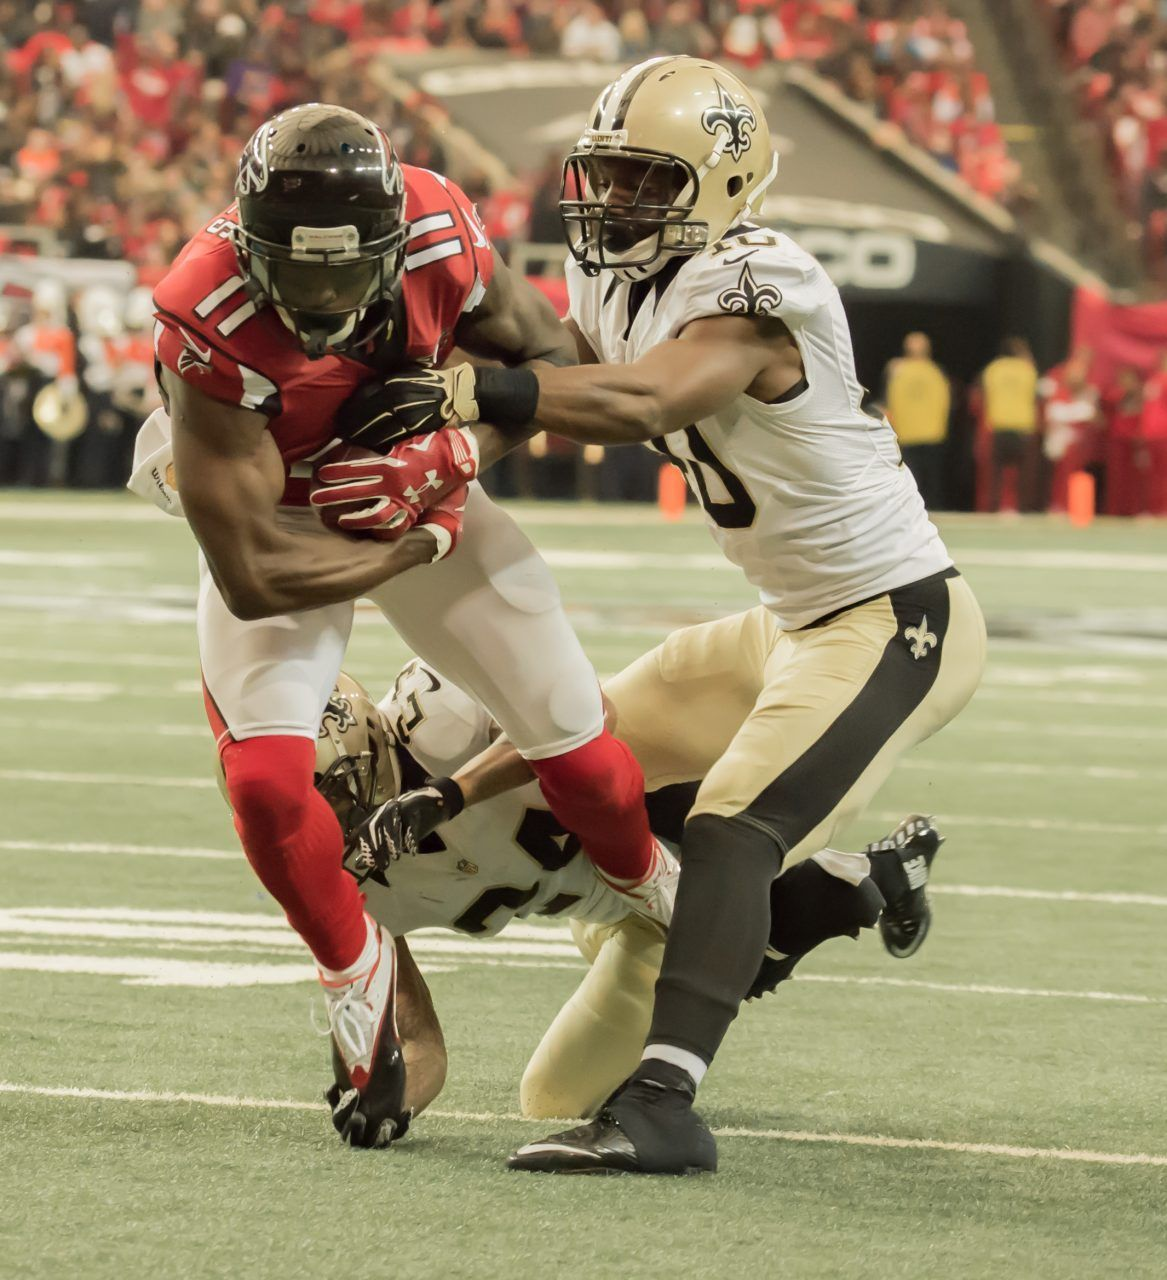 By David Schiele They Say That The Holidays Are The Season For Giving Referee Pete Morelli And His Crew Gifted The New O Falcons Nfc South New Orleans Saints